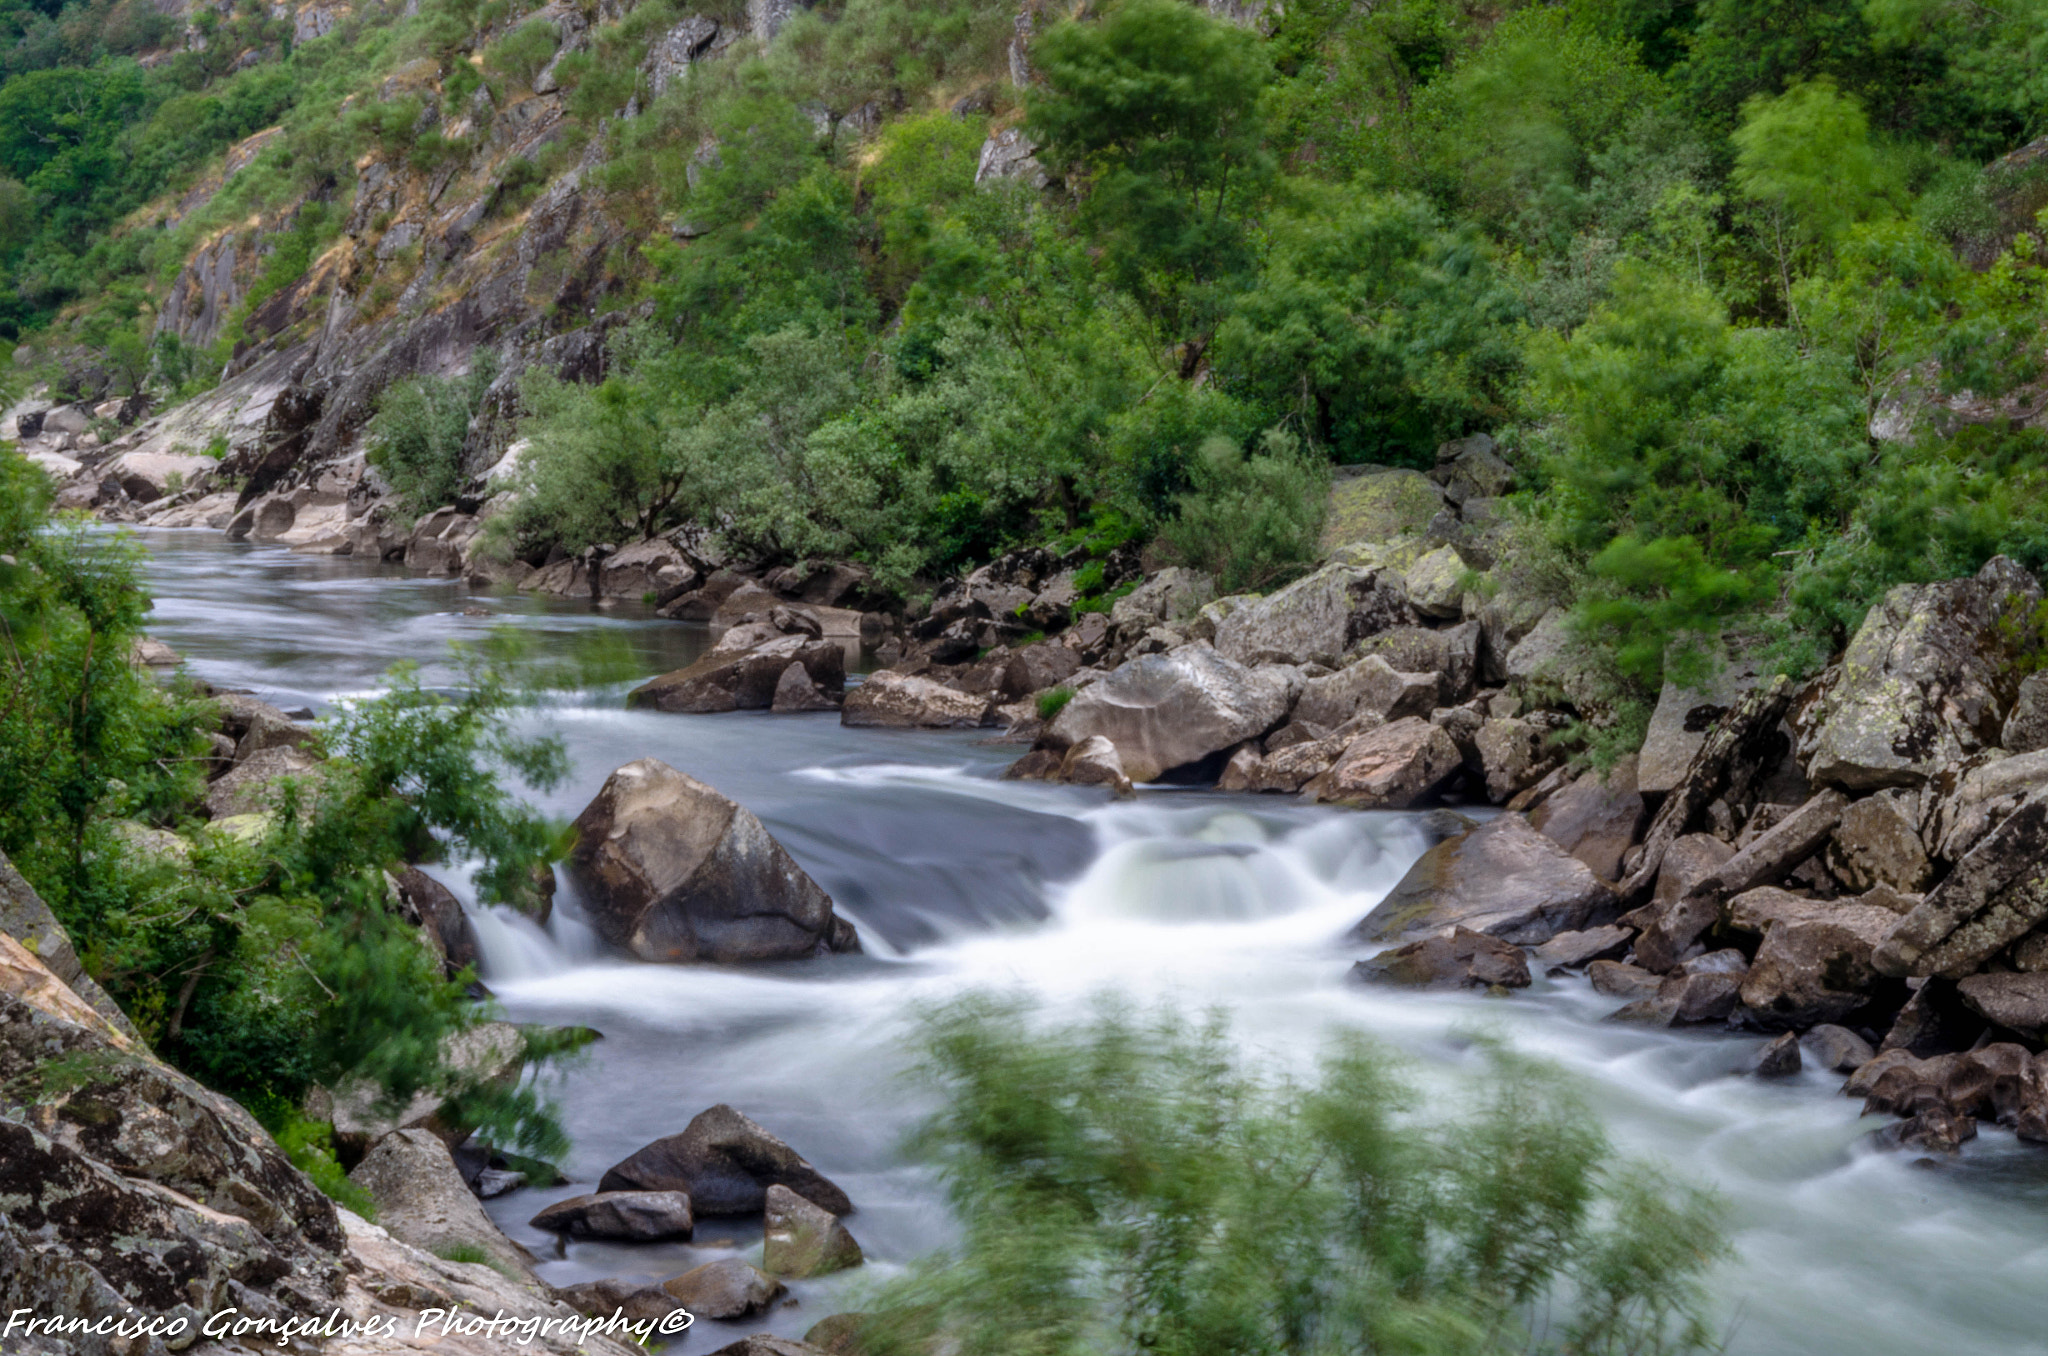 Photograph River Tamega by Francisco Goncalves Photography on 500px